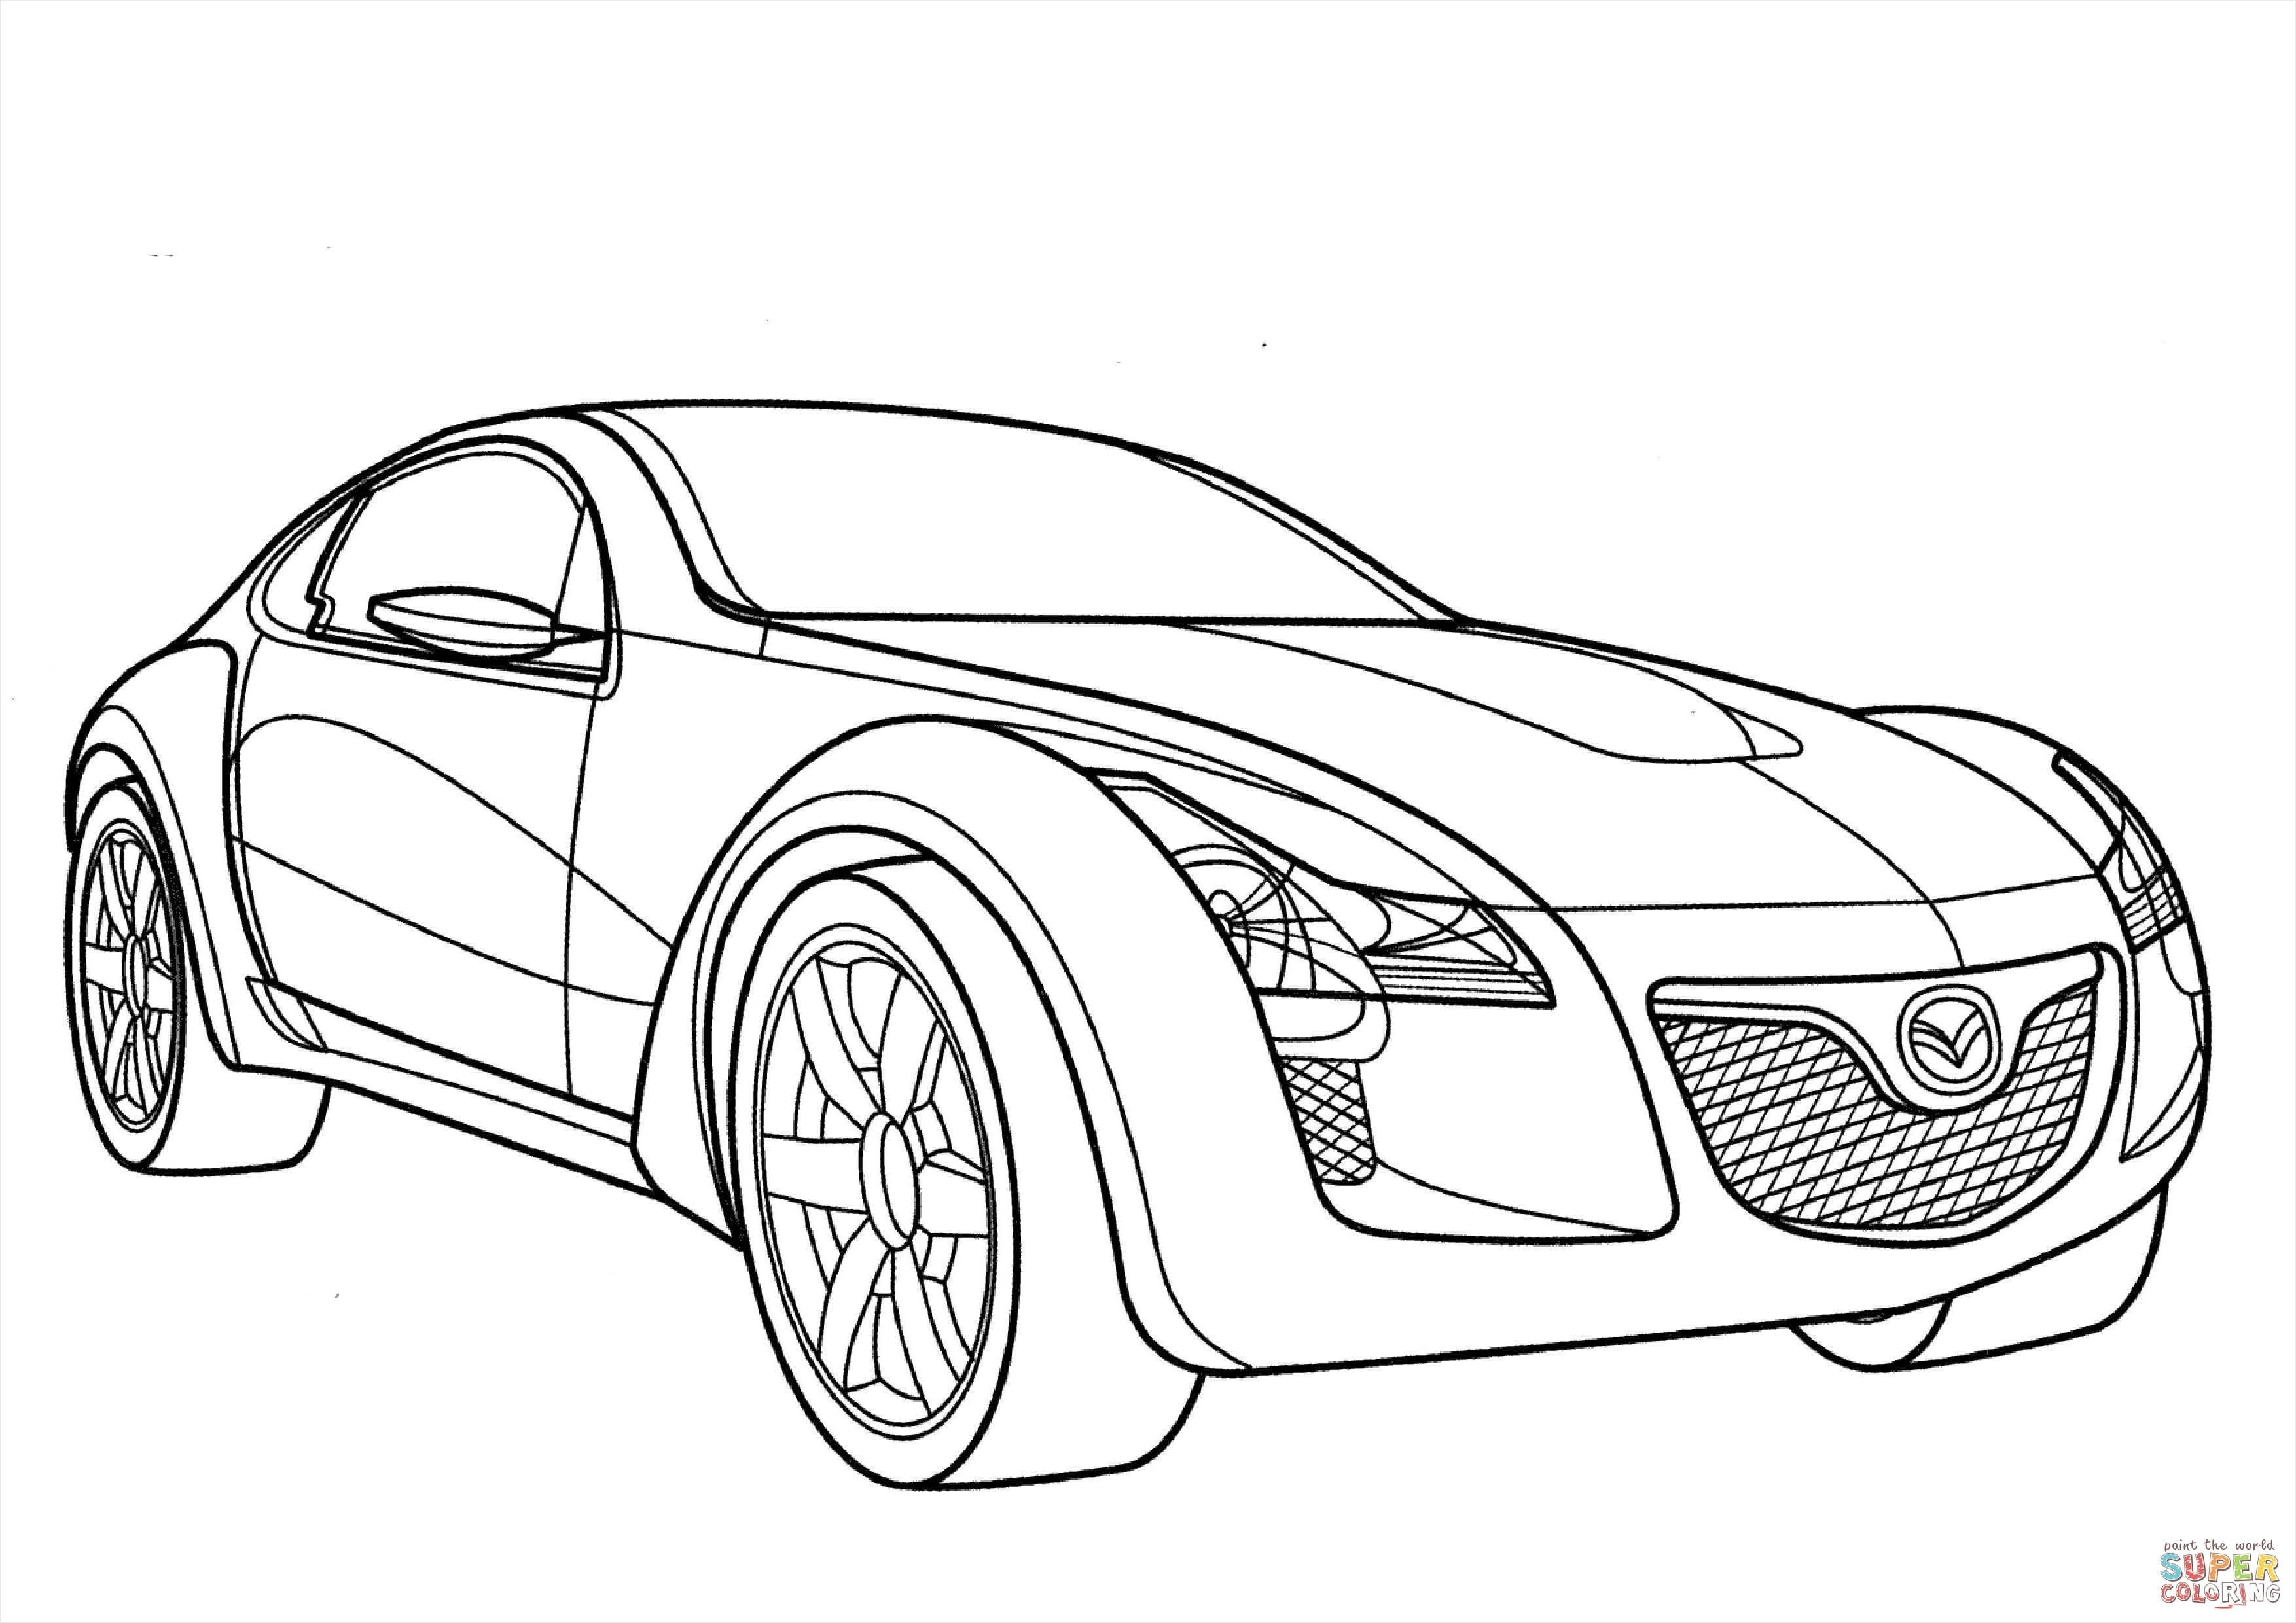 Nissan Skyline Coloring Pages At Getdrawings Com Free For Personal